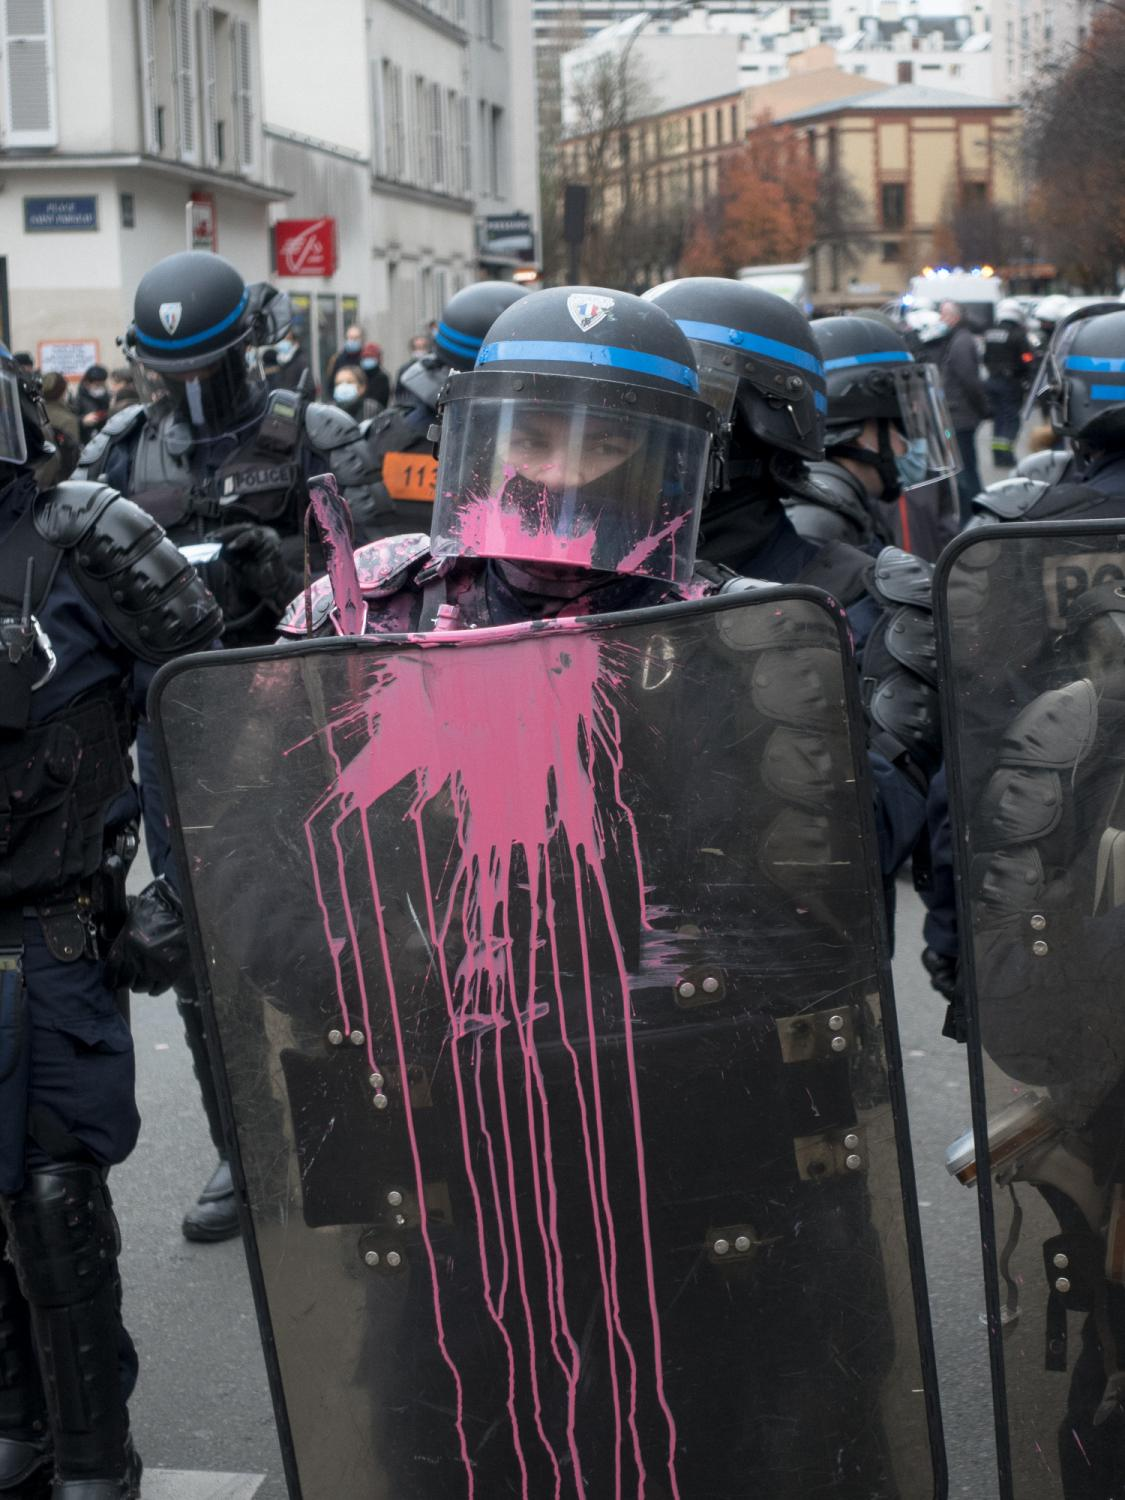 """Policemen watching the rally against the called """"Sécurité Globale"""" (Global Security) bill during a march in Paris were targeted by the rioters with paint. Gambetta avenue, Paris, France, the 5th of December 2020."""